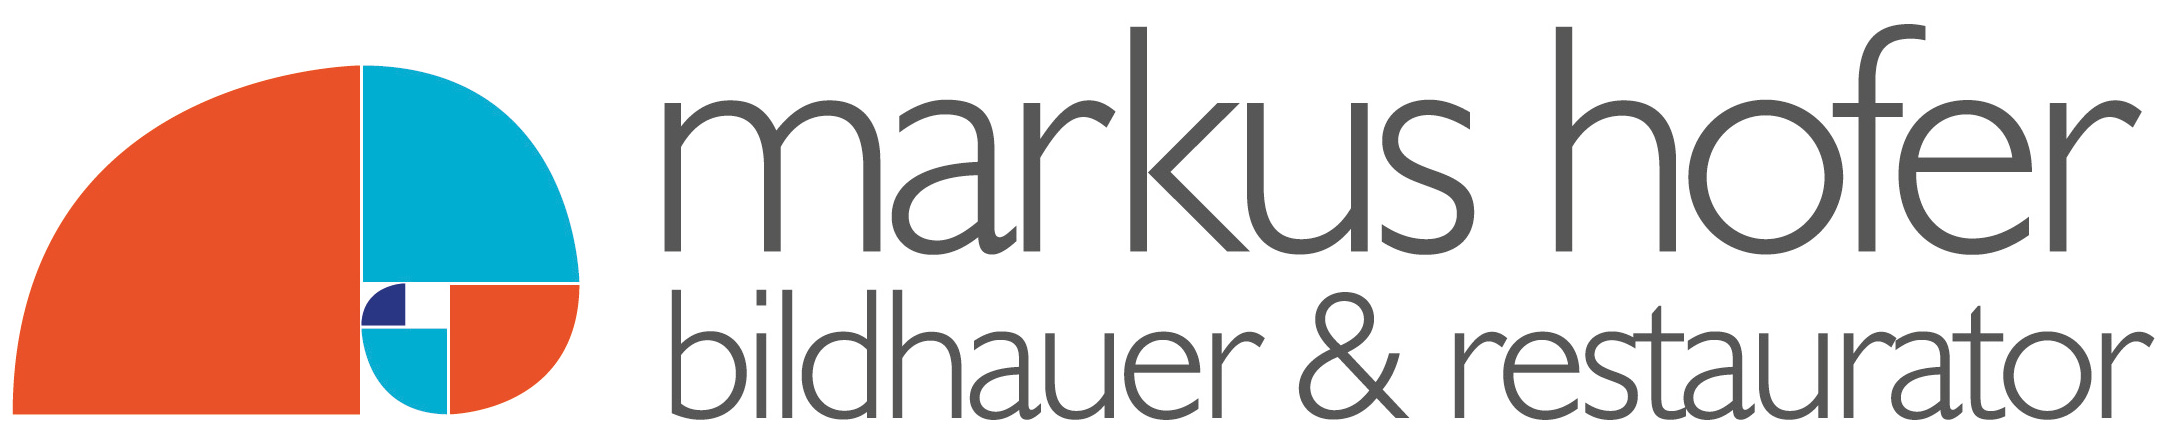 Hofer markus 2017 WEB